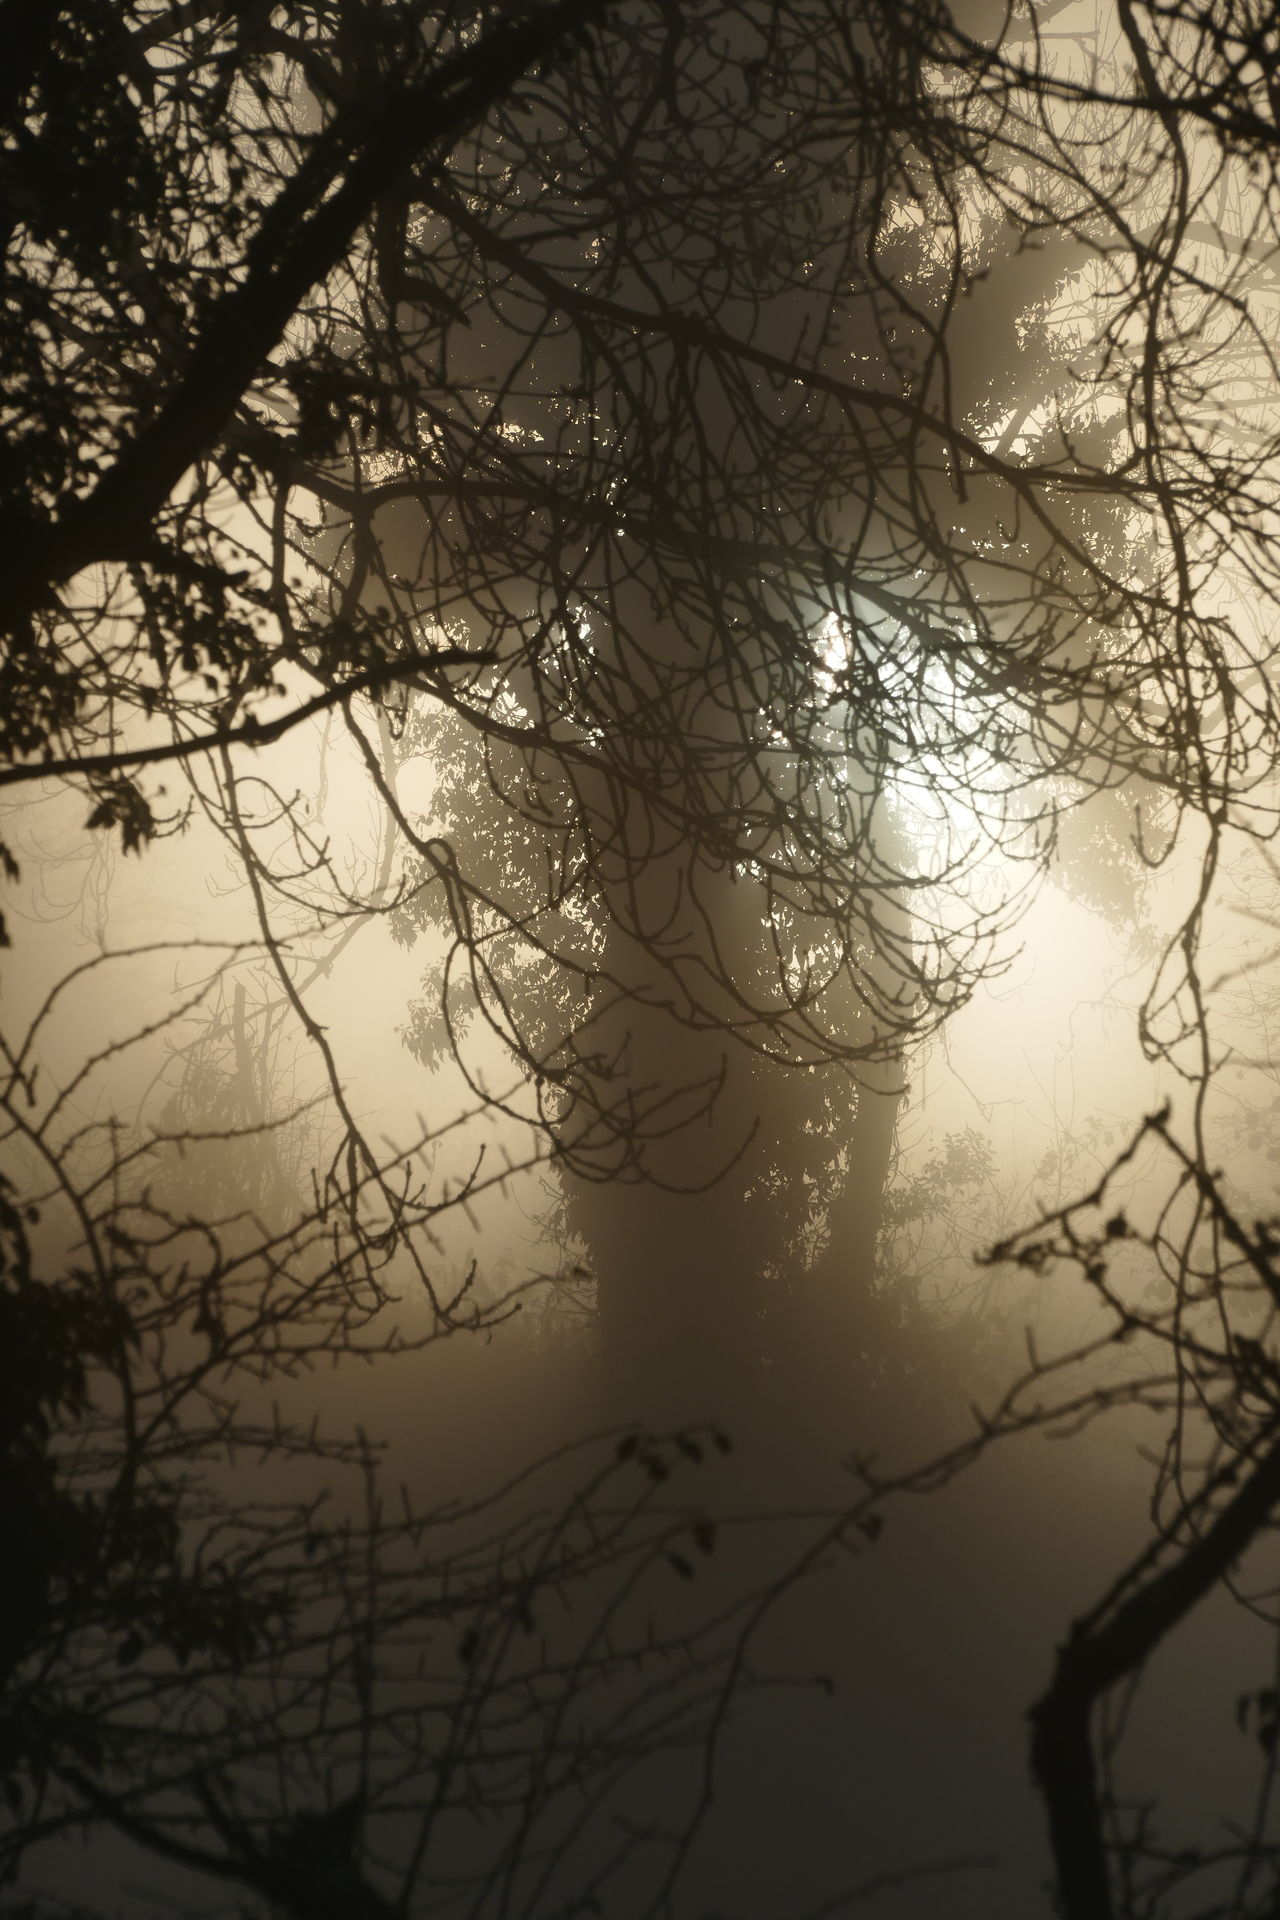 Foggy day.. Autumn Bare Tree Beauty In Nature Branch Close-up Day Dream States Ethereal Fog Foggy Foggy Weather Growth Low Angle View Nature No People Outdoors Silhouette Silhouette Silhouette_collection Sky Softness Sunset Tranquility Tree